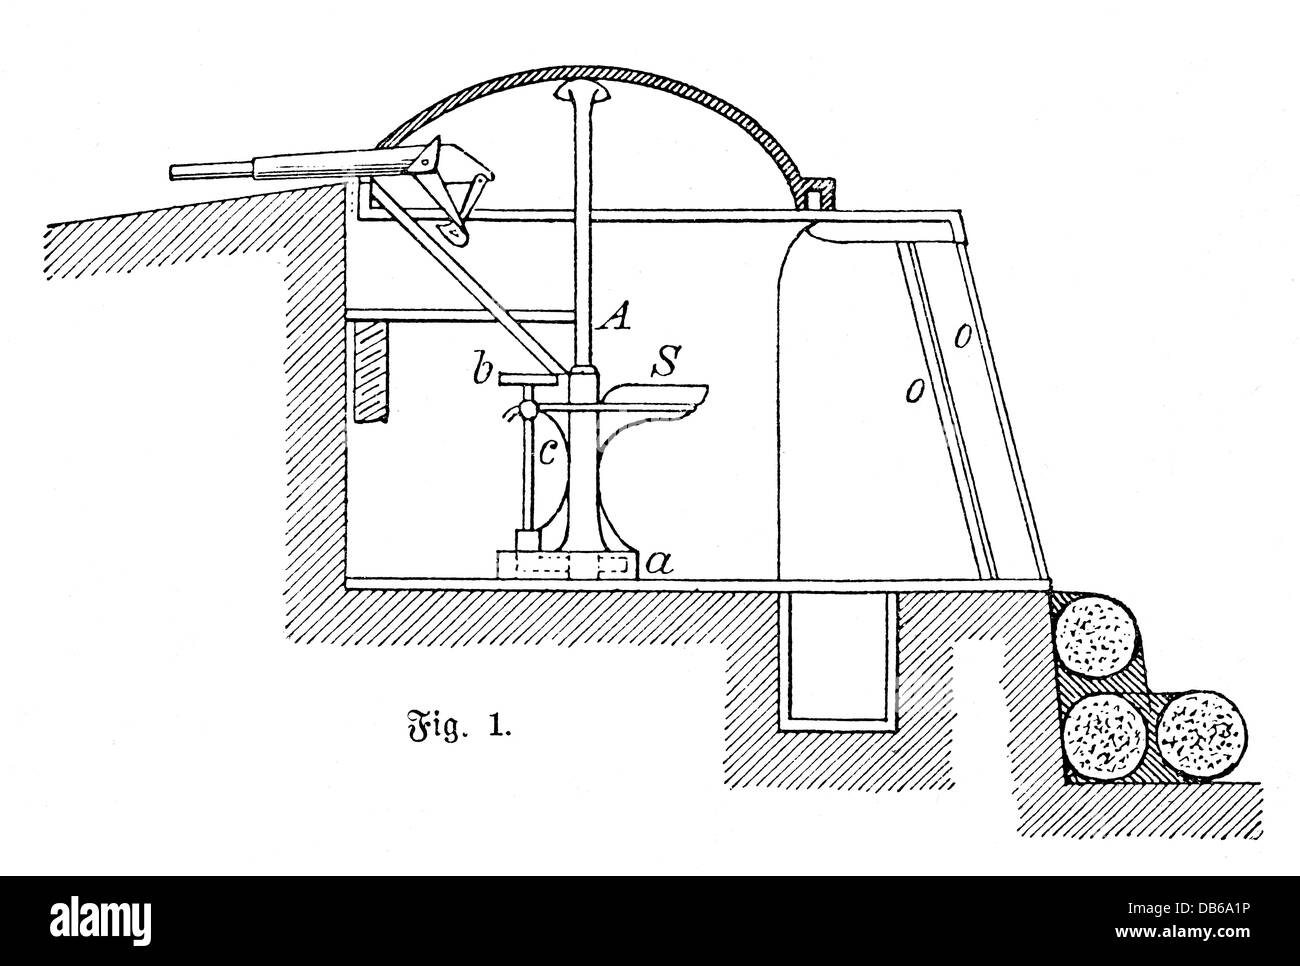 Cross Section Trench Warfare Diagram